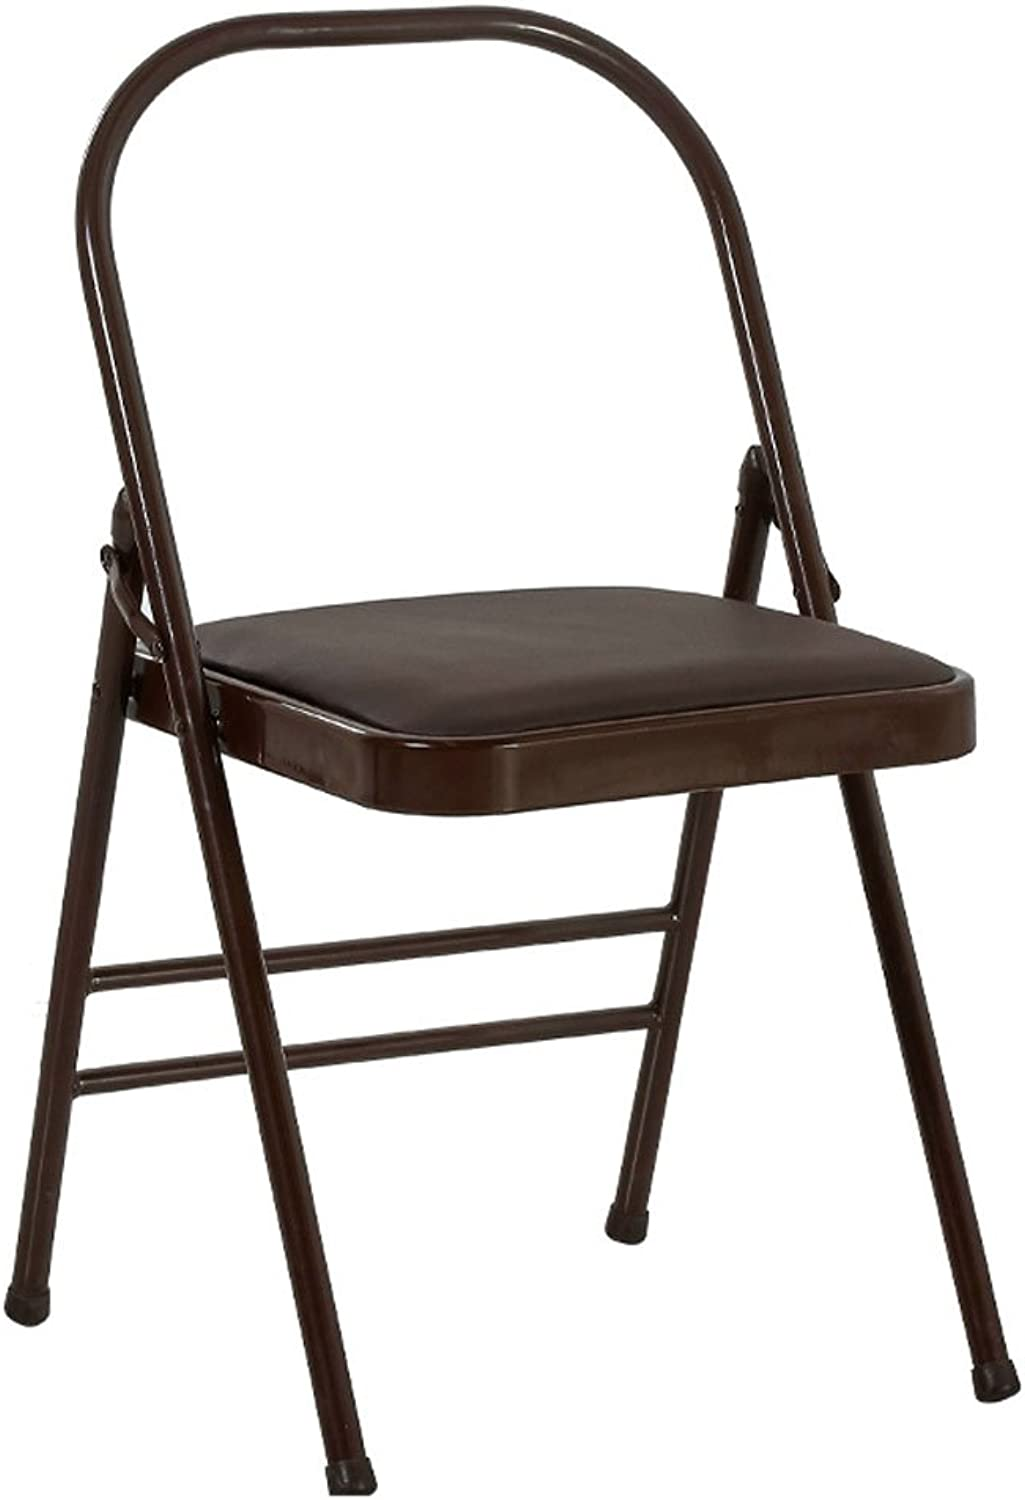 CQOZ Yoga Chair Stool Auxiliary Chair Household Folding Chair Thickening Folding Chair Folding Chair (color   Brown)